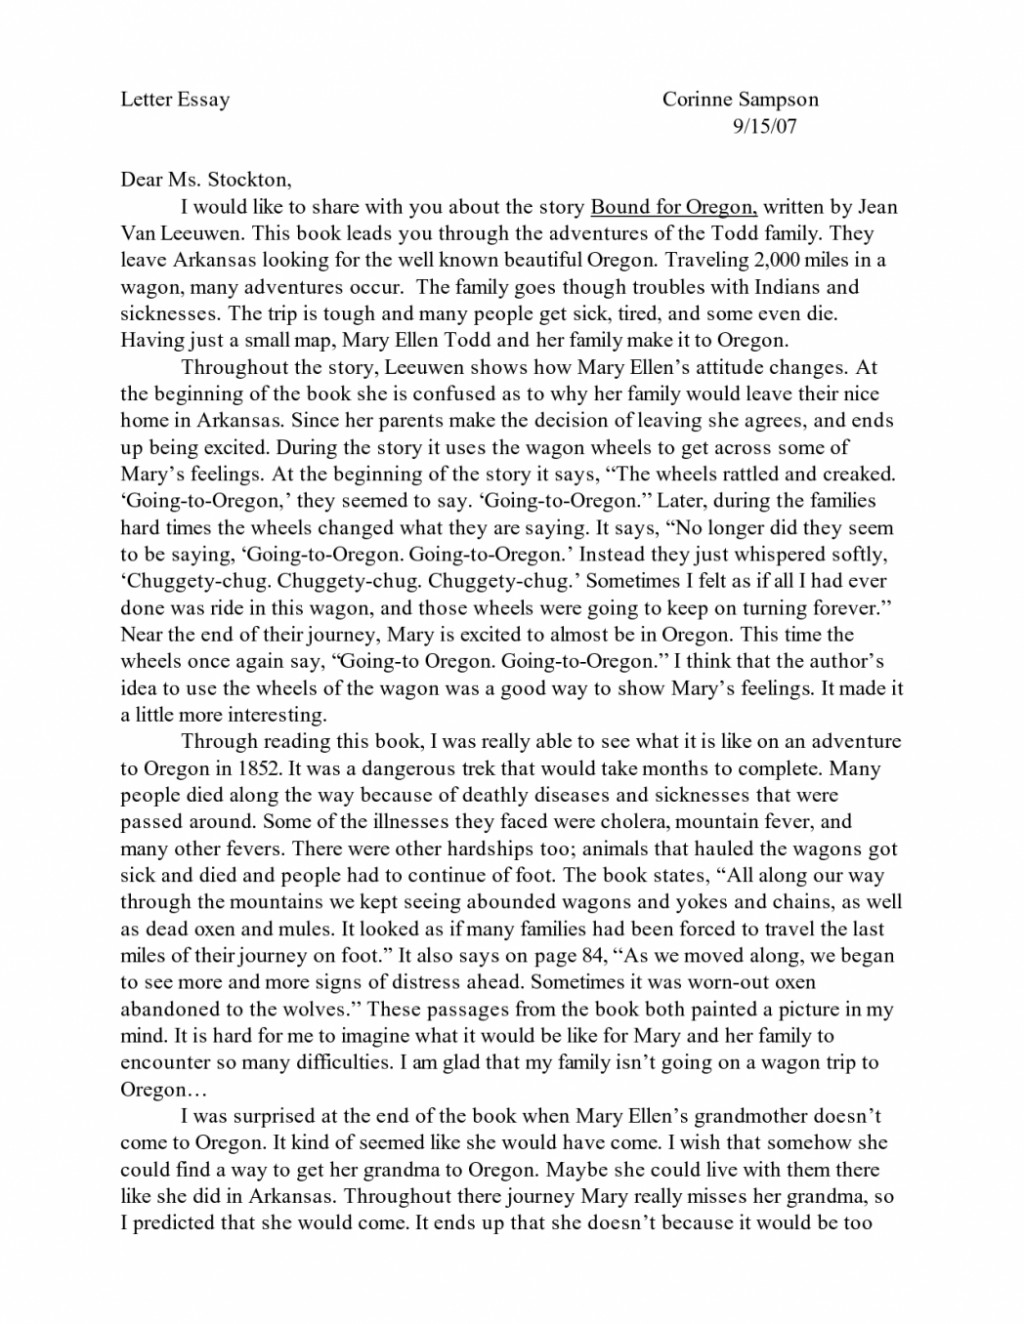 009 Sample Essay College Scholarships How To Write Winning Scholarship Format About Yourself Best Way 1048x1356 Prompts Template Examples Large